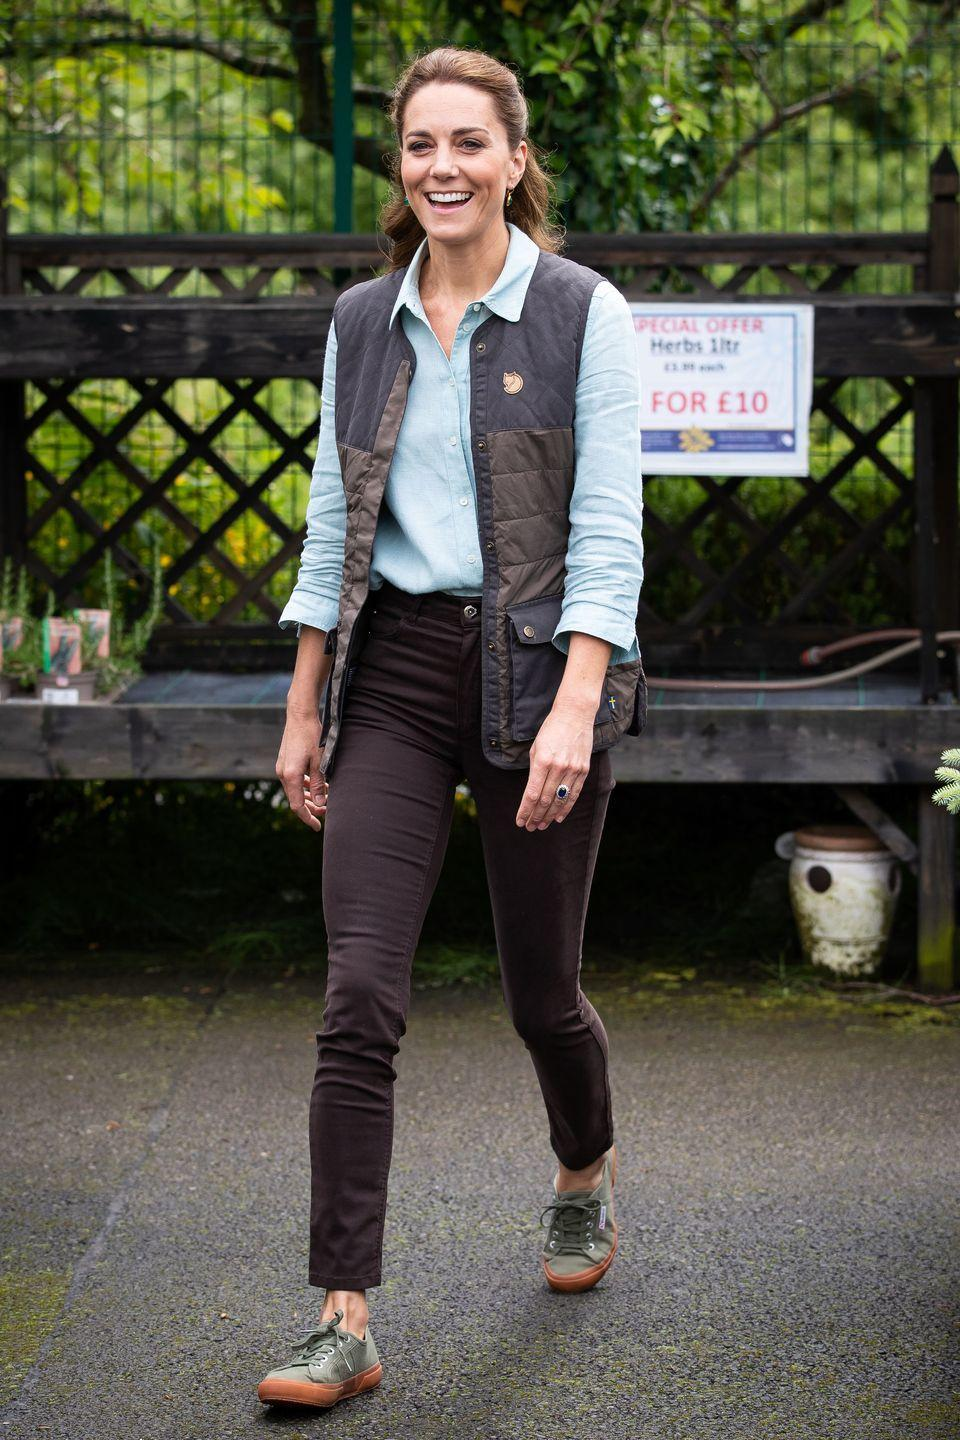 "<p>The Duchess chose a preppy yet functional look for a visit to Fakenham Garden Centre in Norfolk. Kate, a gardener herself, spoke with Fakenham's owners about their experience running the center during the COVID-19 pandemic. This outfit consisted of a light blue button down shirt, black skinny jeans, a Fjallraven vest, and green Superga sneakers. </p><p>Find a similar vest <a href=""https://www.backcountry.com/fjallraven-greenland-down-liner-vest-womens"" rel=""nofollow noopener"" target=""_blank"" data-ylk=""slk:here"" class=""link rapid-noclick-resp"">here</a>. </p><p><a class=""link rapid-noclick-resp"" href=""https://go.redirectingat.com?id=74968X1596630&url=https%3A%2F%2Fwww.superga-usa.com%2F&sref=https%3A%2F%2Fwww.townandcountrymag.com%2Fstyle%2Ffashion-trends%2Fnews%2Fg1633%2Fkate-middleton-fashion%2F"" rel=""nofollow noopener"" target=""_blank"" data-ylk=""slk:Shop Superga"">Shop Superga</a></p>"